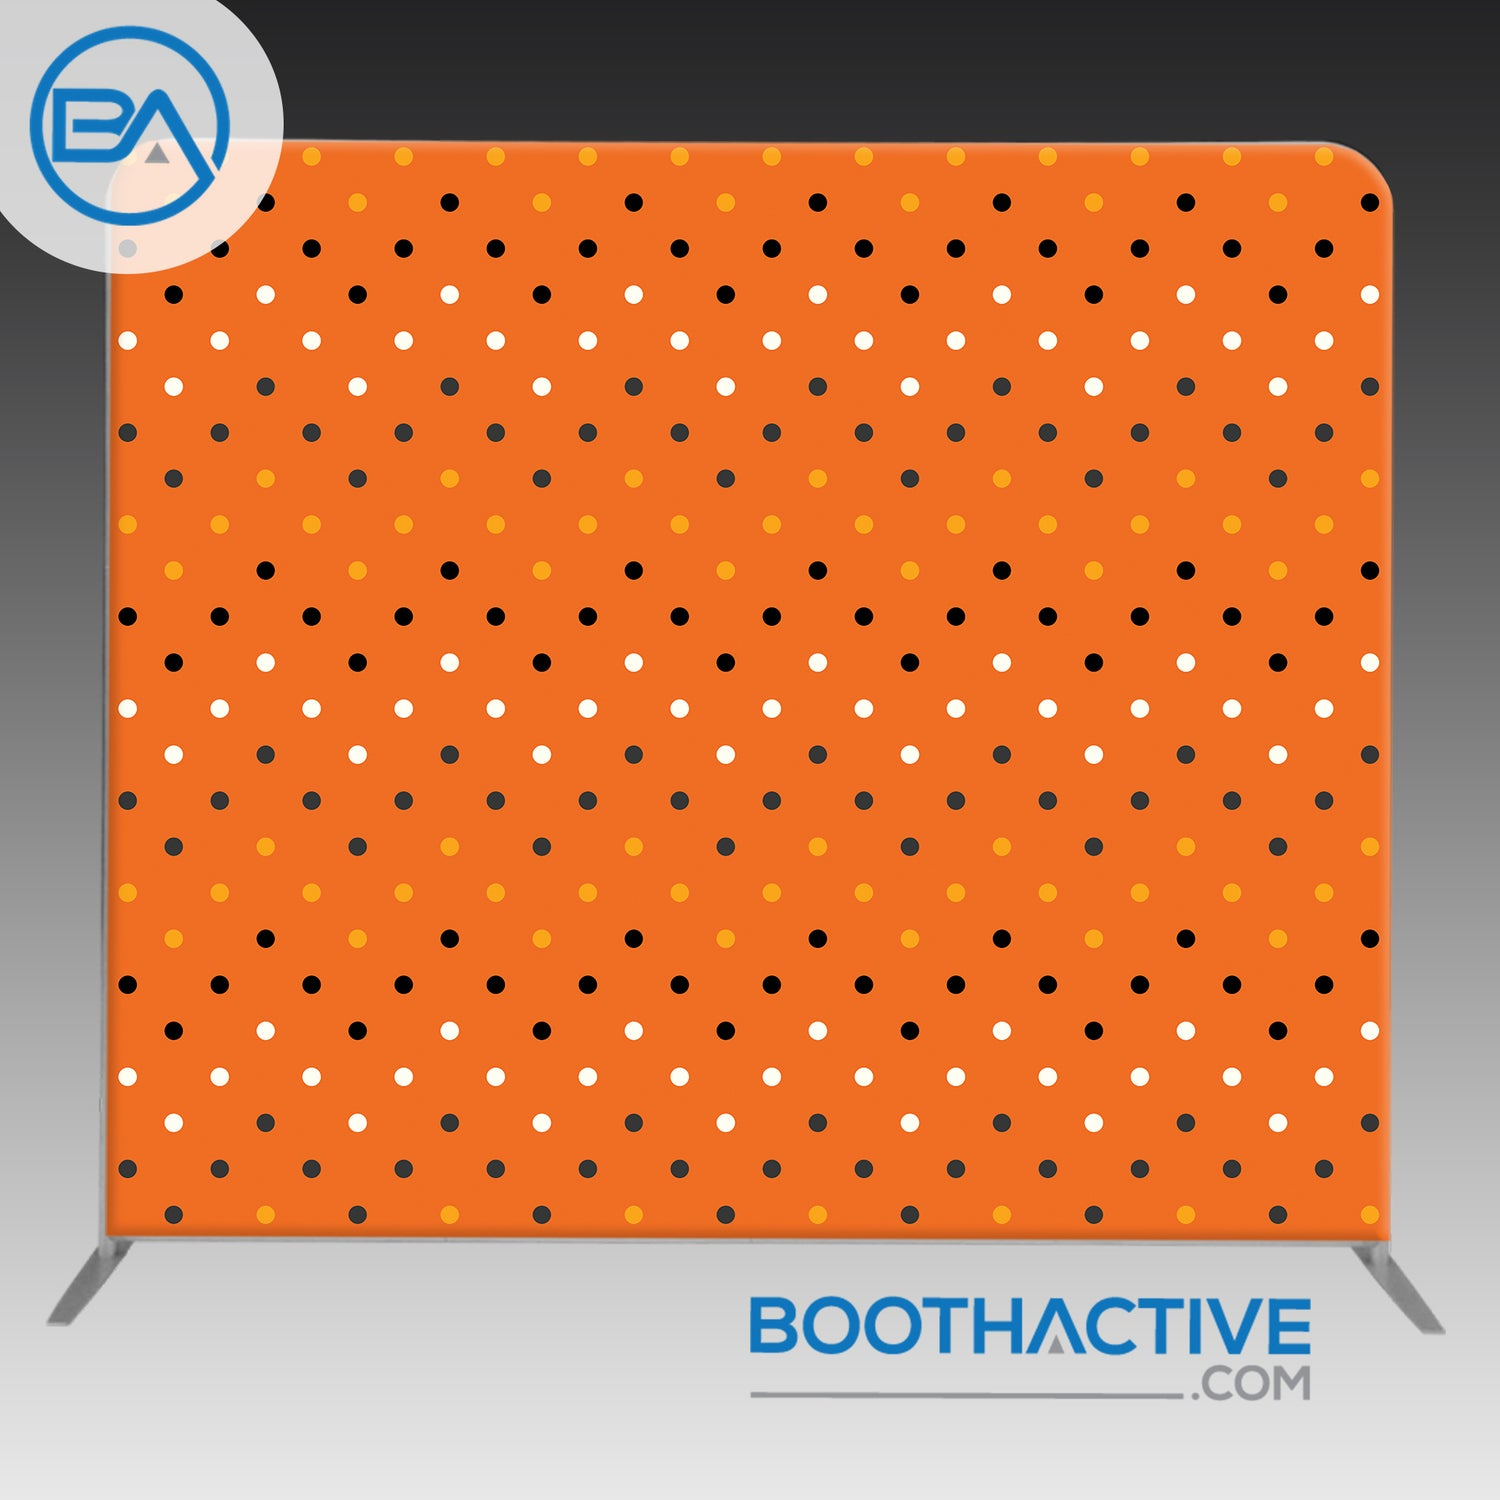 8' x 8' Backdrop - Halloween 2 - BoothActive